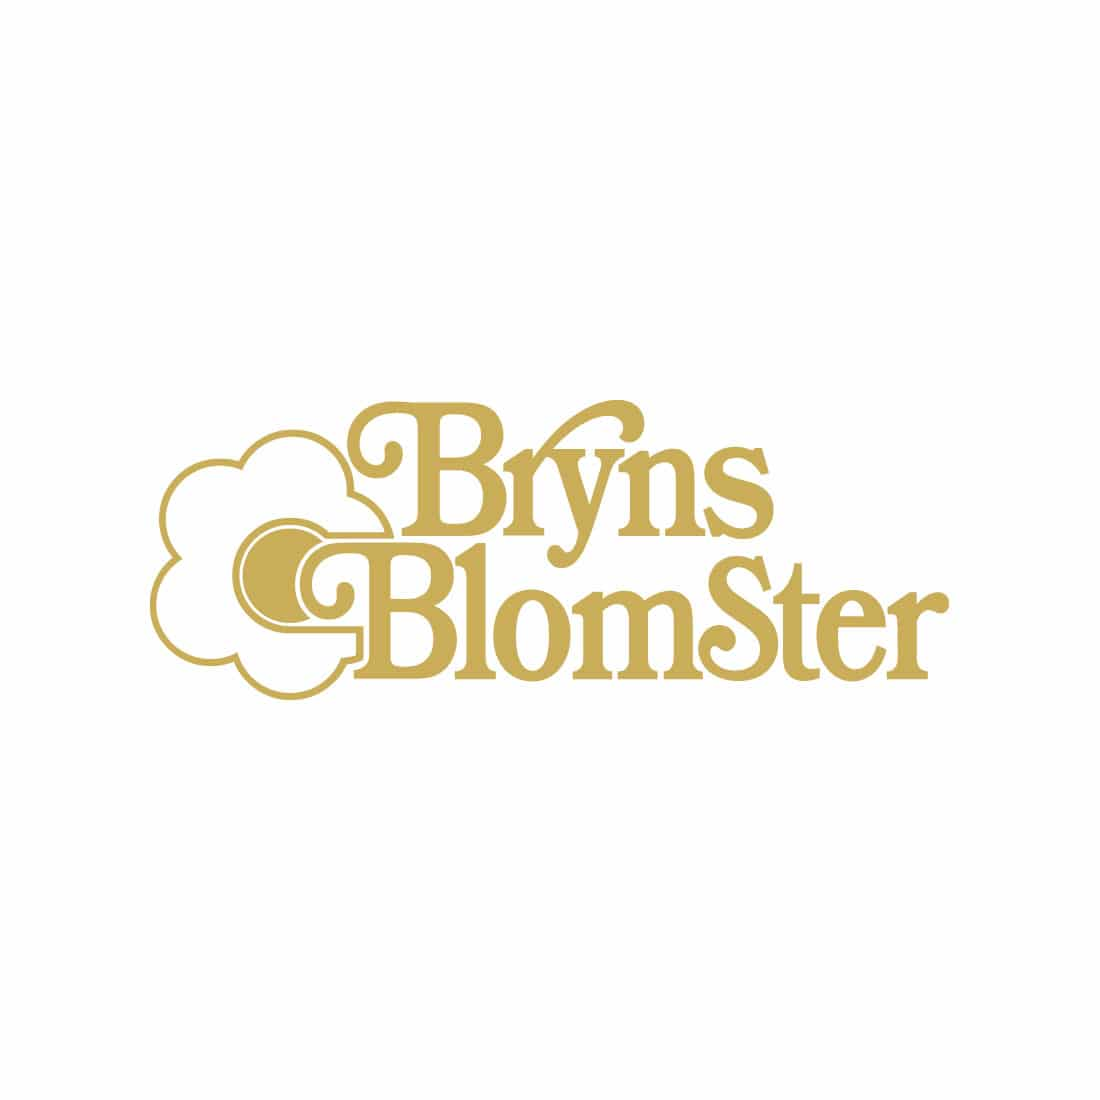 Bryns Blomster